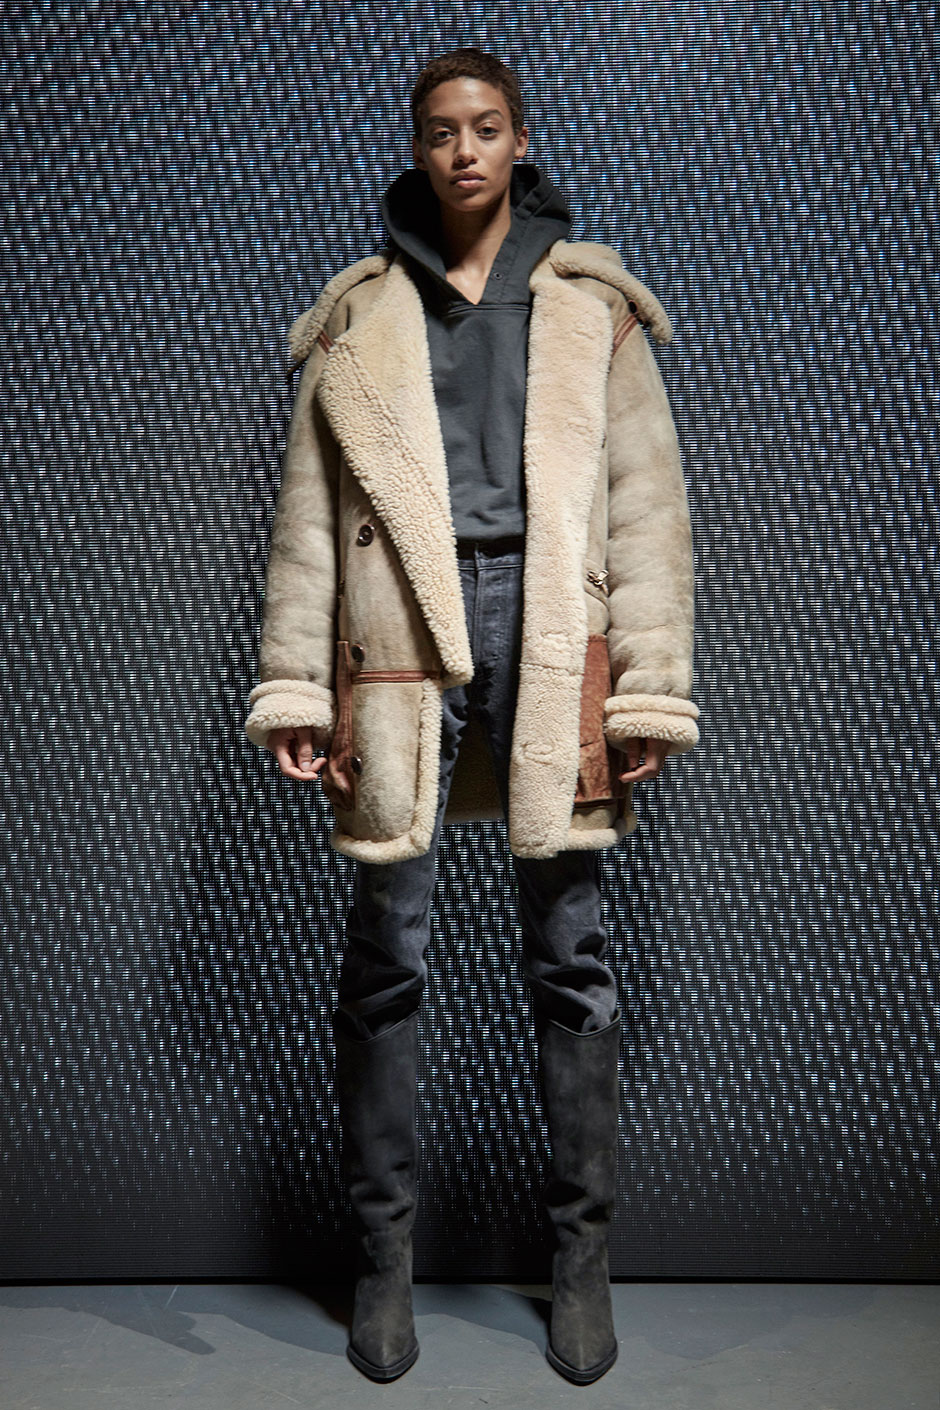 51a89bfa35264 Complete Yeezy Season 5 Clothing/Footwear Recap | SneakerNews.com